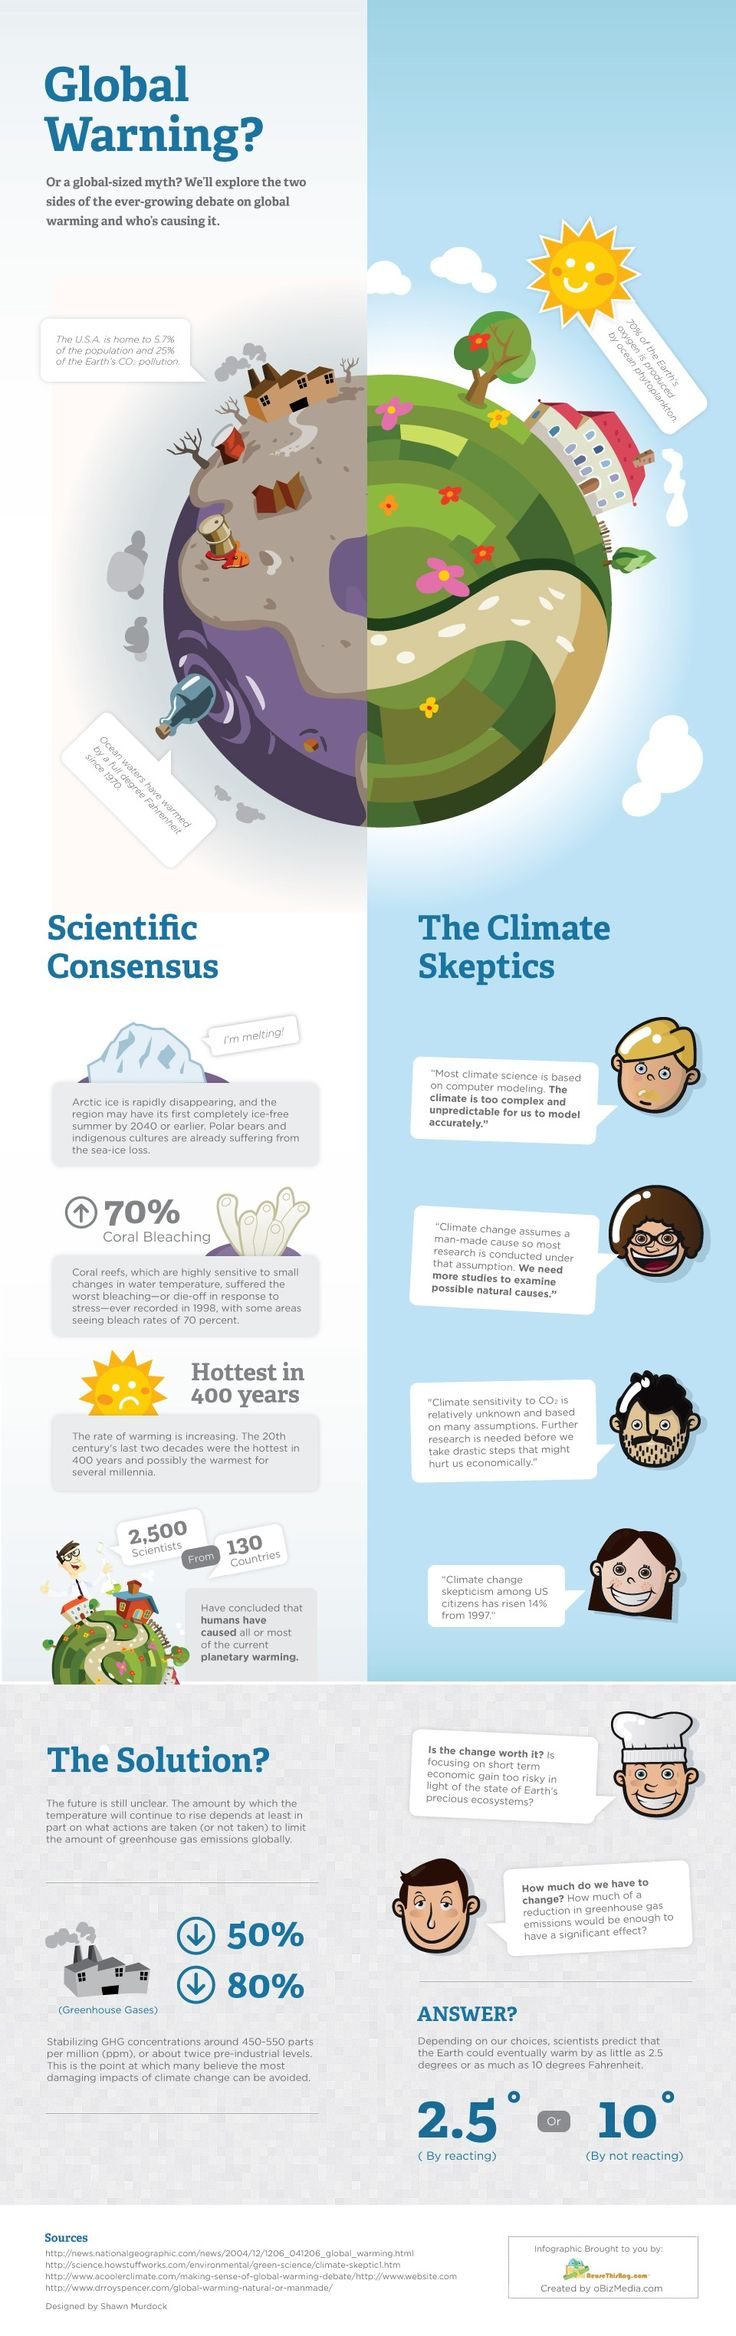 best ideas about make your own poster design the poster will help you to make your own conclusion about global warming